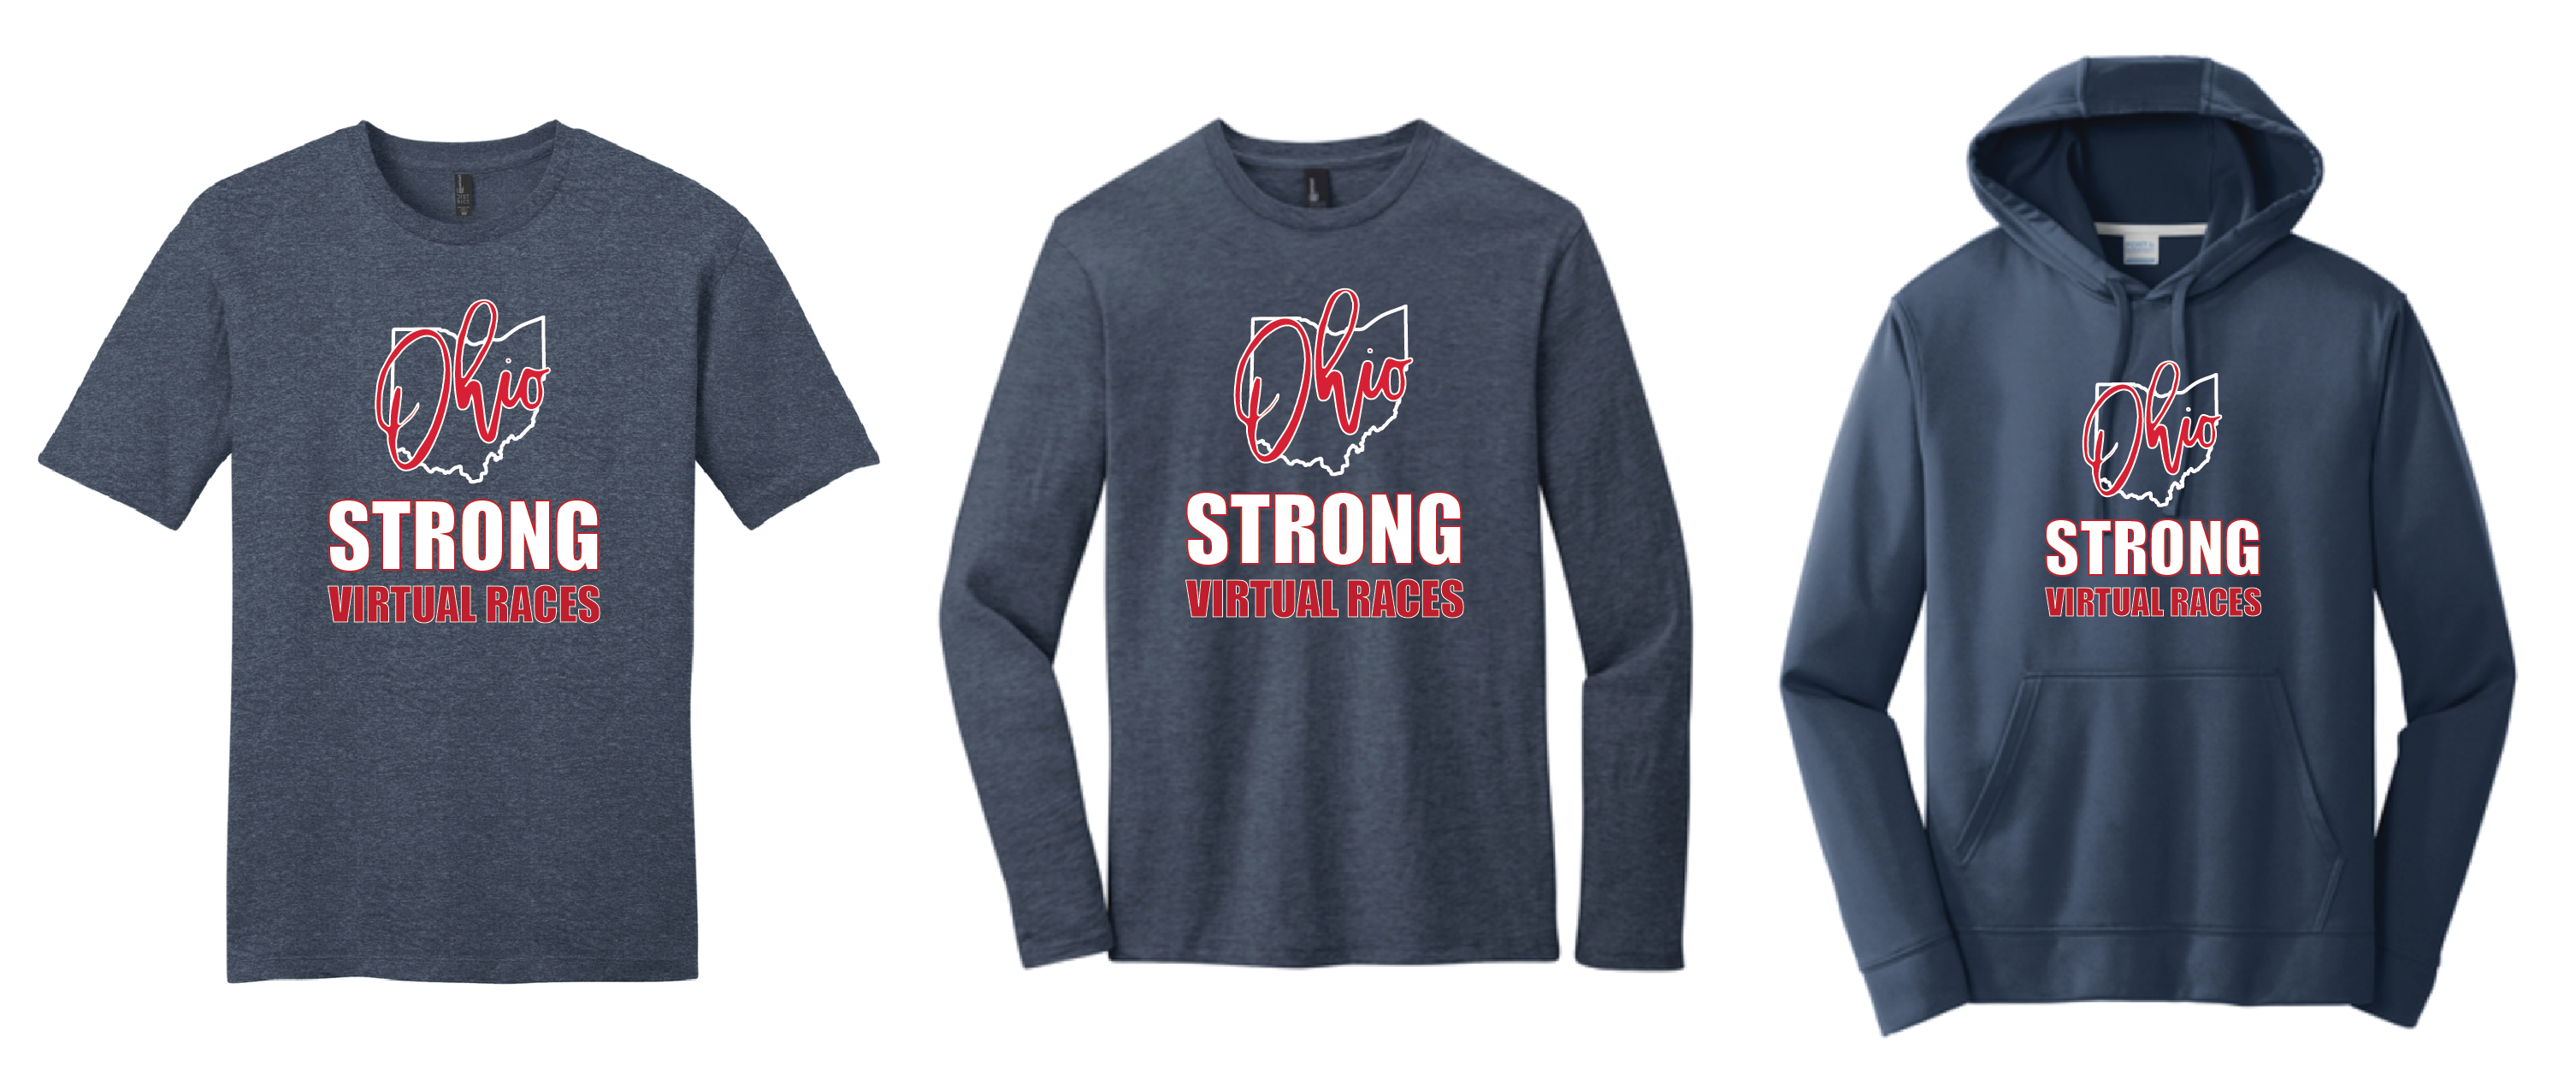 Ohio Strong Tshirt, Long Sleeve Shirt and Hooded Sweatshirt